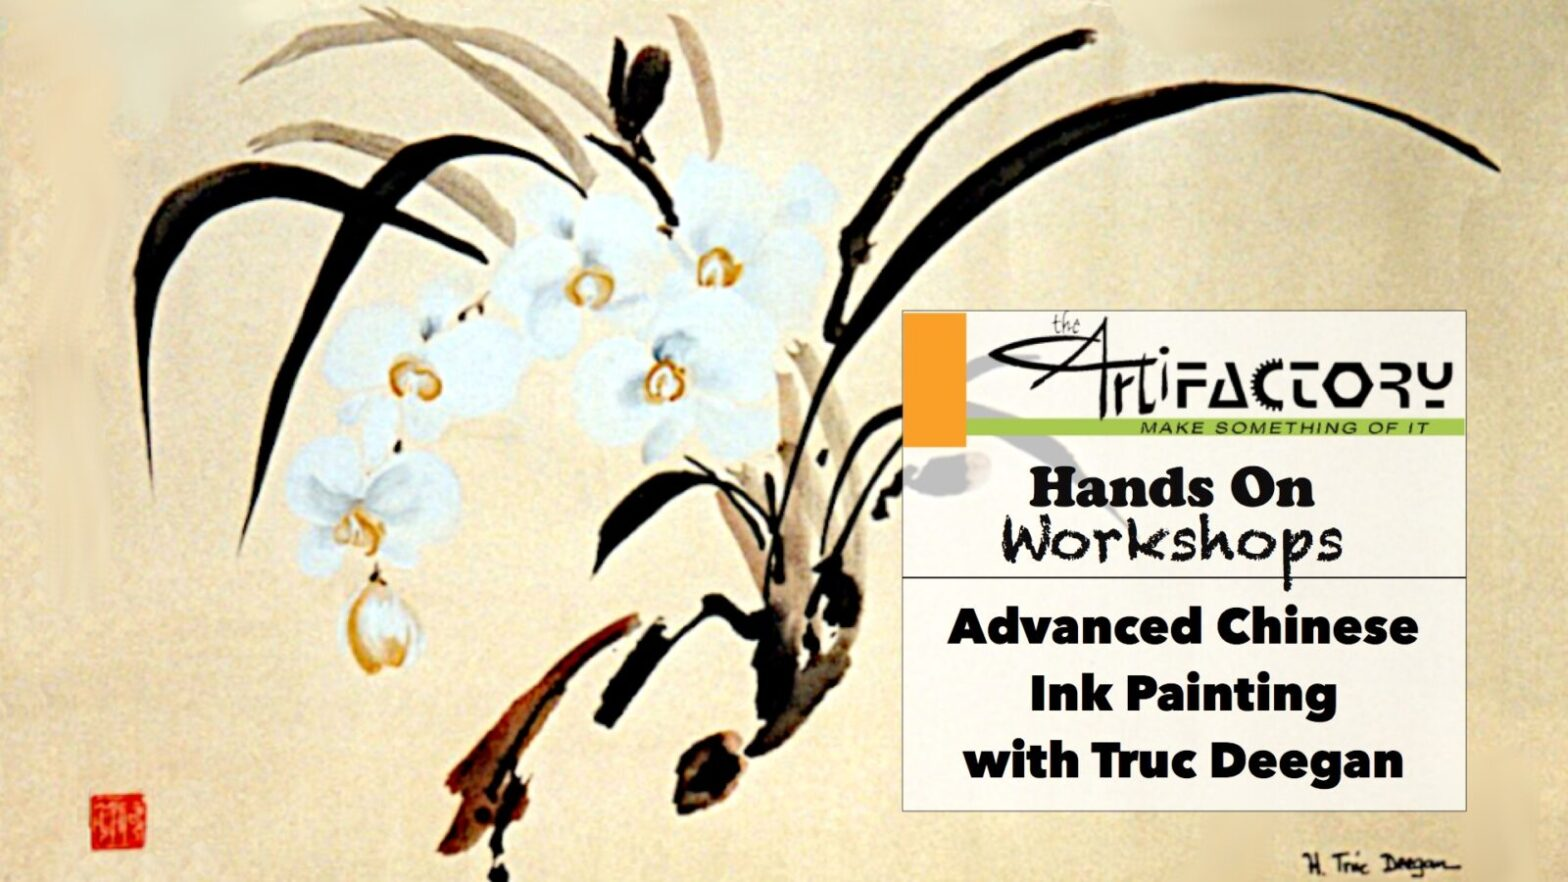 Advanced Chinese Ink Painting